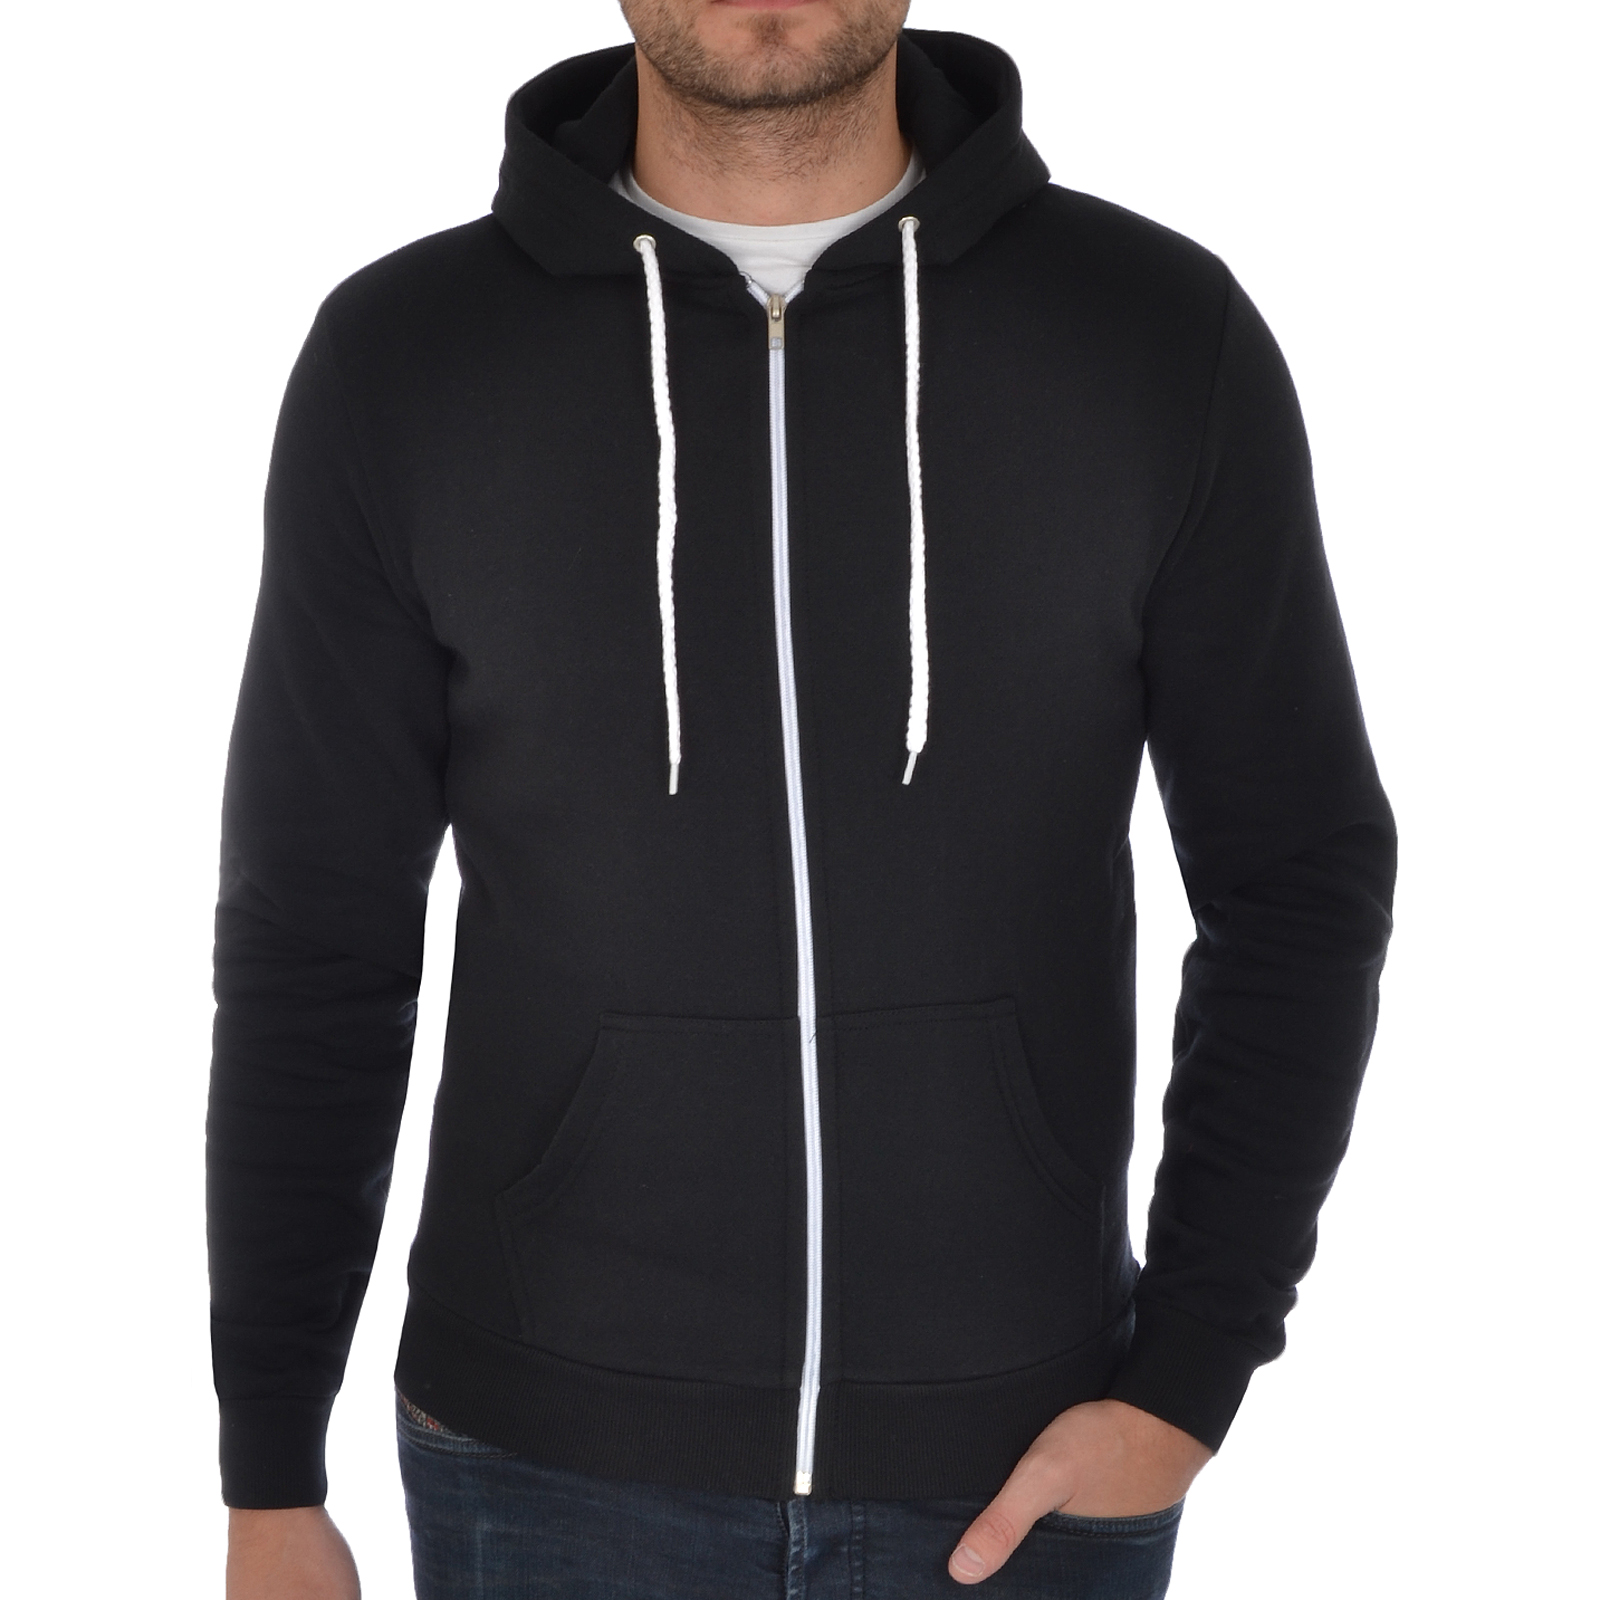 Find great deals on eBay for Mens Slim Fit Hoodie in Men's Coats And Jackets. Shop with confidence. Skip to main content. eBay: Shop by category. Shop by category. Enter your search keyword. Local Service! 3、Color:White 、 Black、 Gray. We will try our best to resolve the issues. SHOULDER CHEST LENGTH.